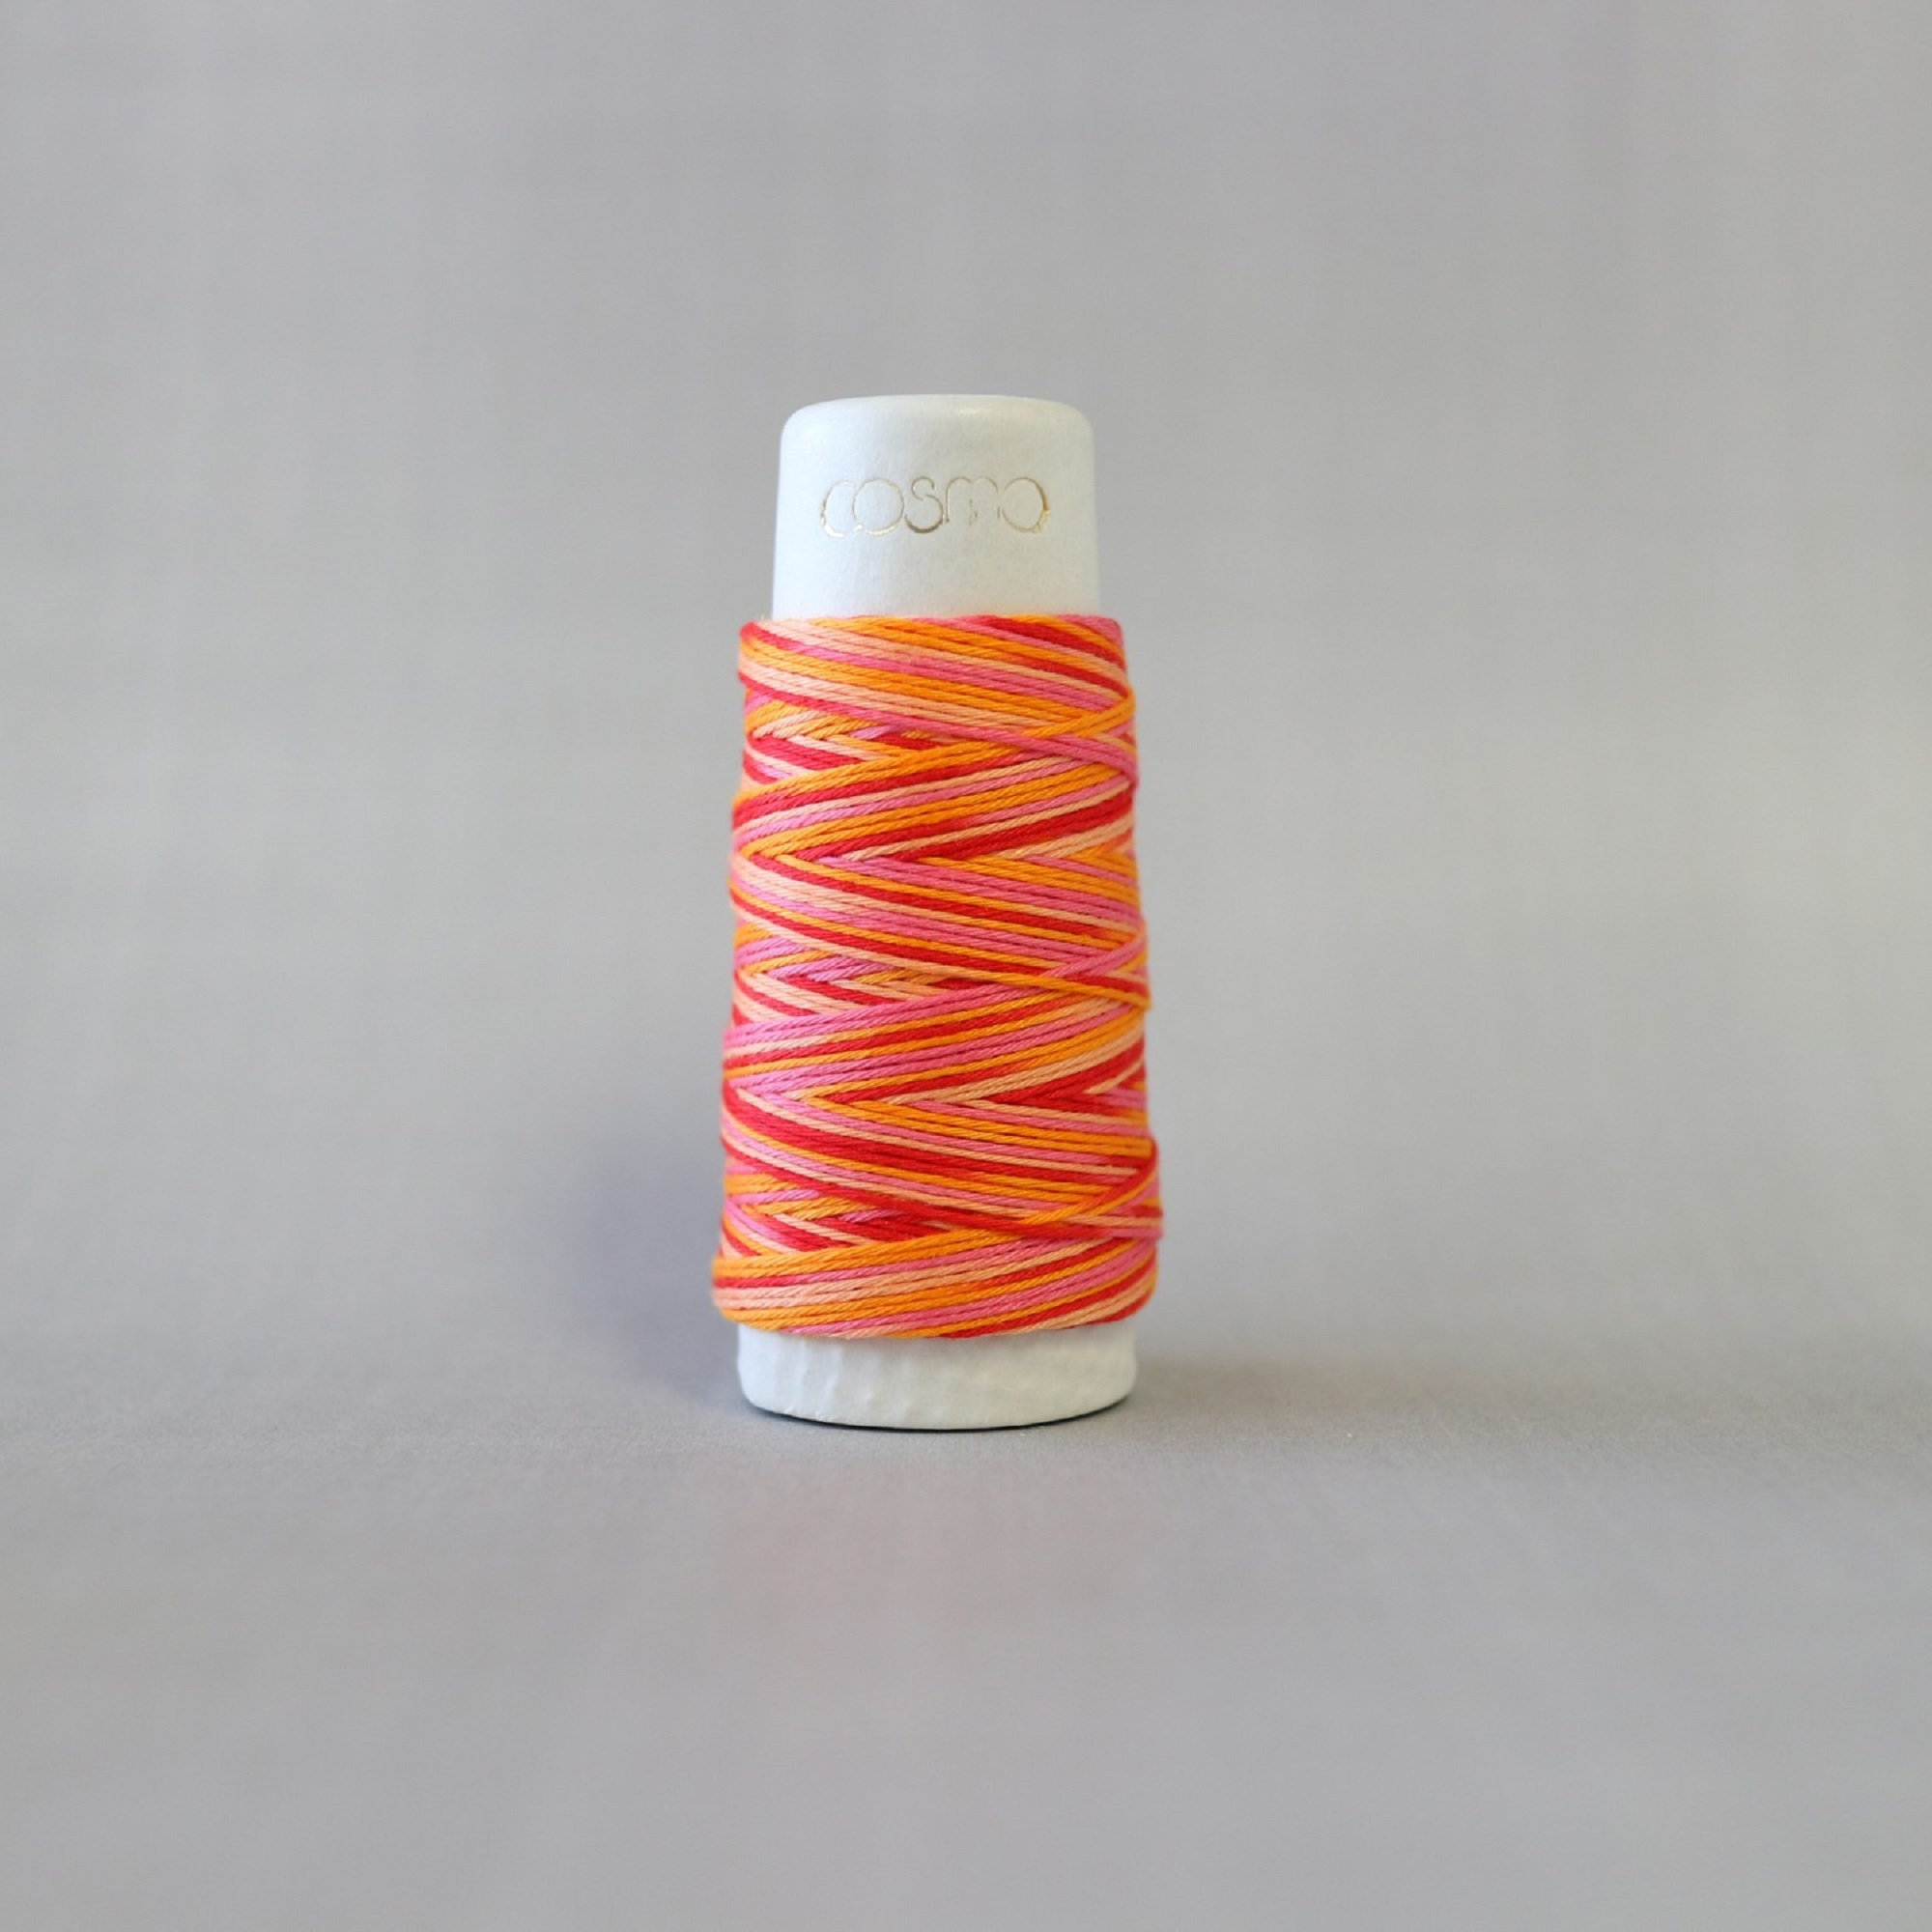 Lecien COSMO hidamari & Sashiko Variegated Cotton Thread - 30m - No. 89-301 Tequila Sunrise